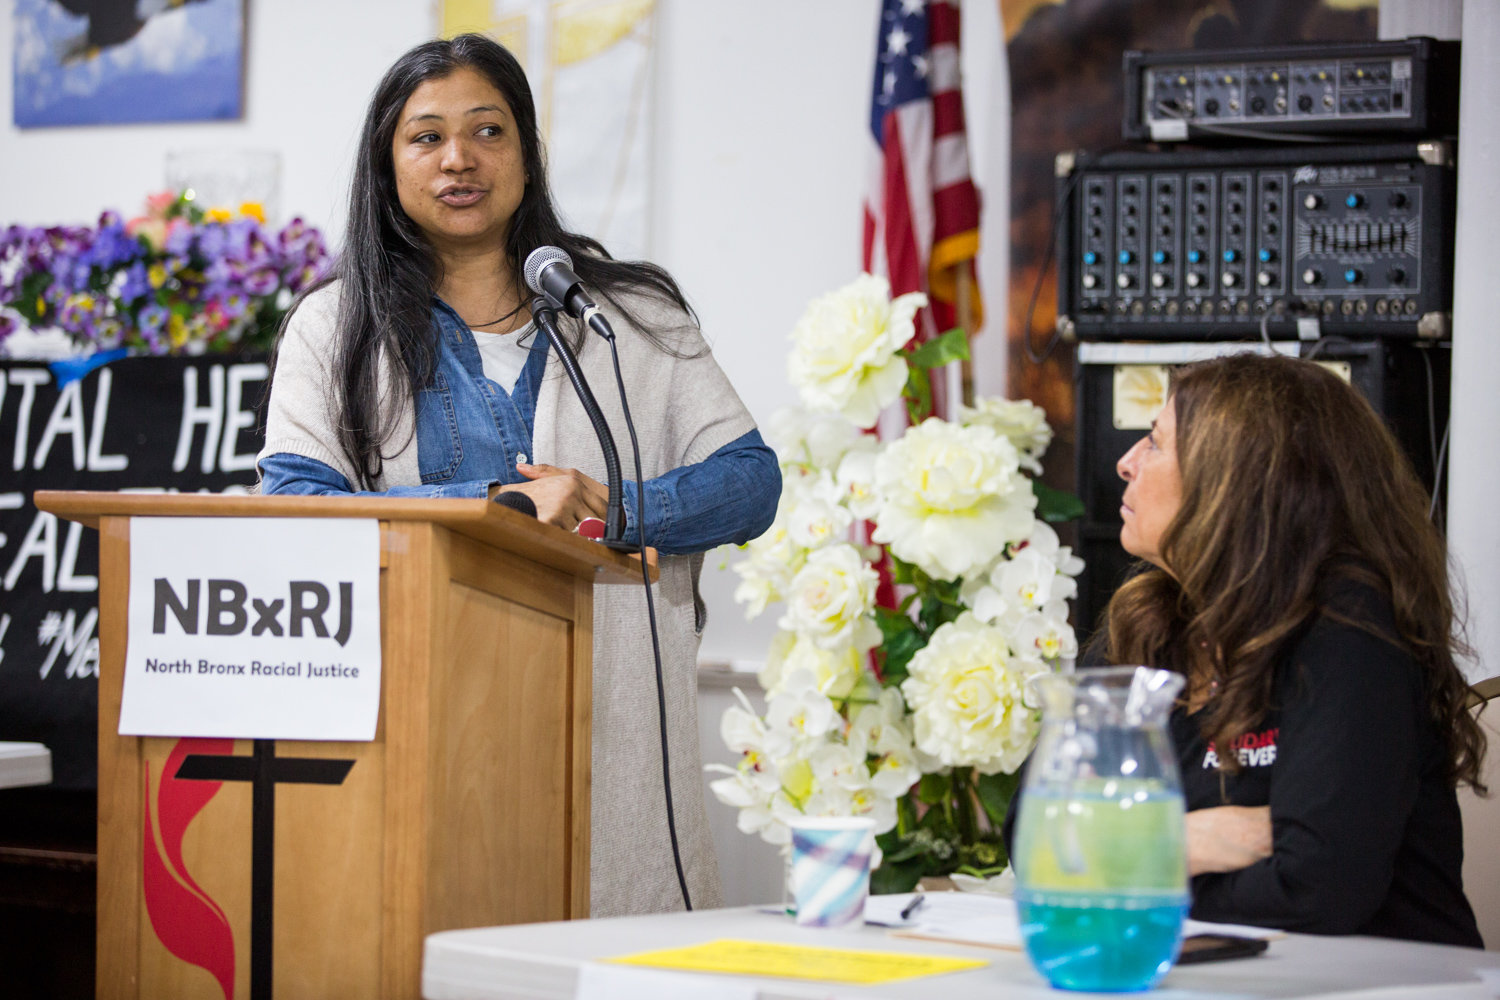 Peggy Herrera recounts a traumatizing experience she and her son had with the police during a panel discussion on mental health and police activity in communities of color at St. Stephen's United Methodist Church on Martin Luther King Jr. Day.